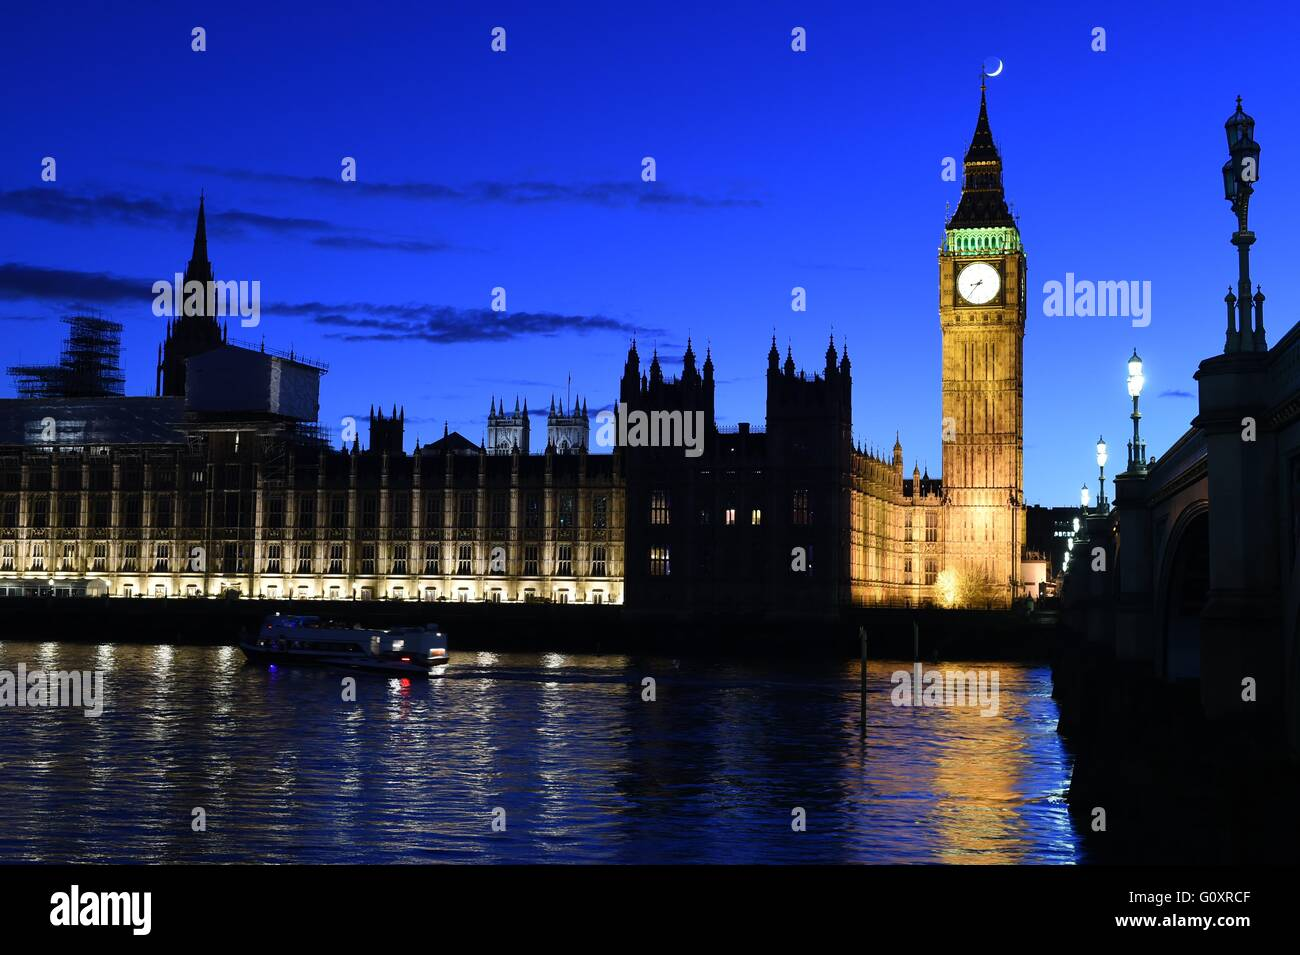 Big Ben, Houses of Parliament and River Thames at Night - Stock Image